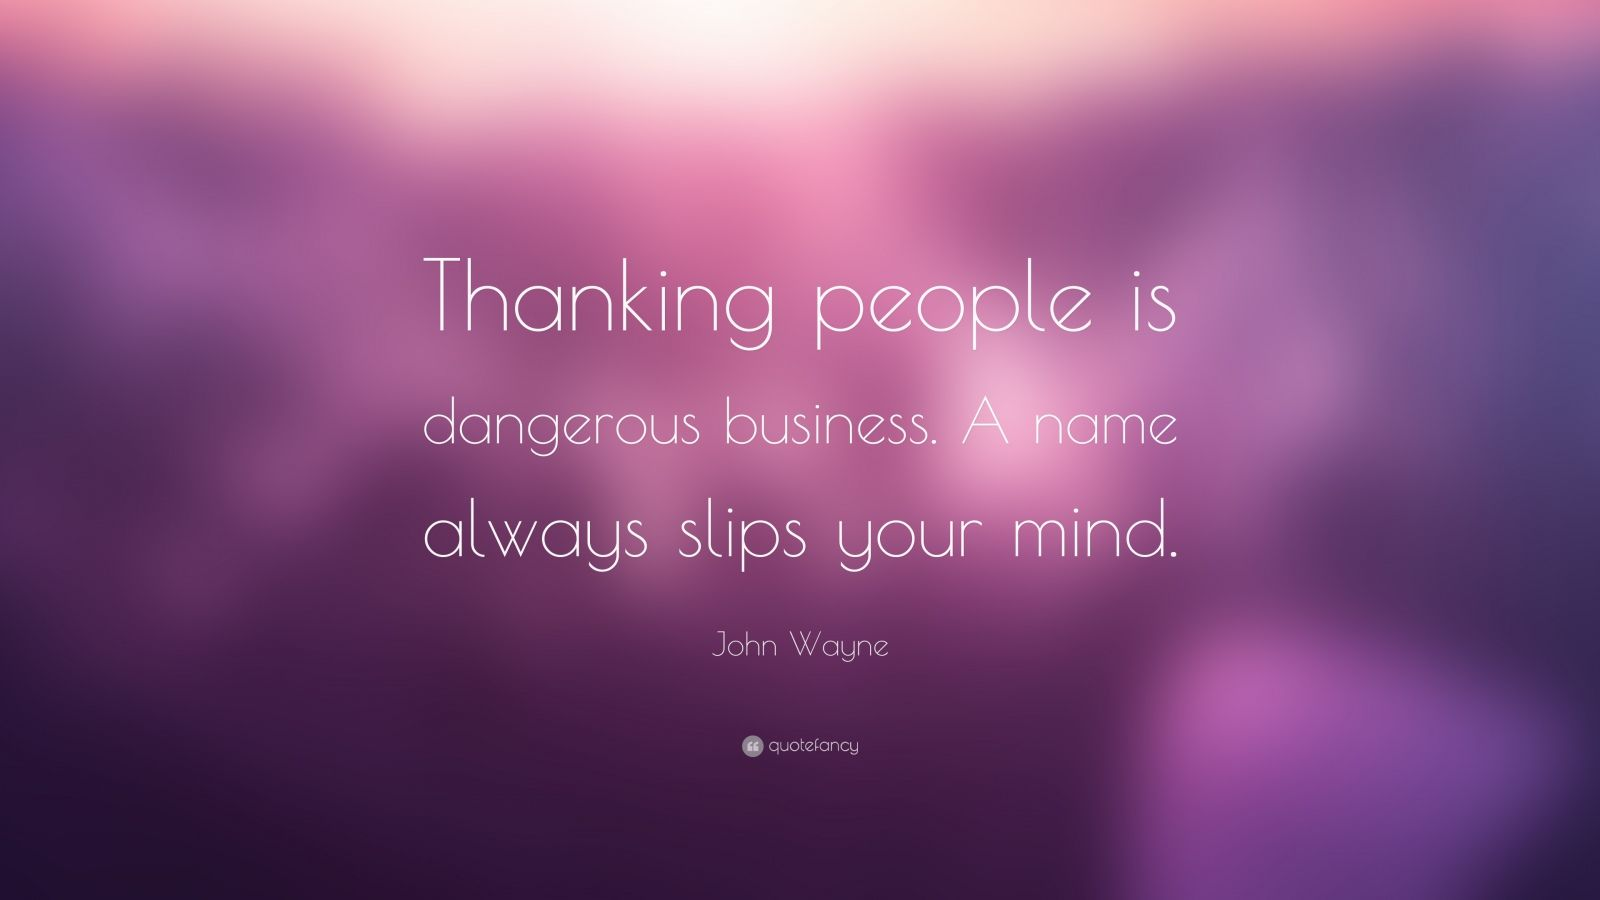 """John Wayne Quote: """"Thanking people is dangerous business. A name always slips your mind."""""""